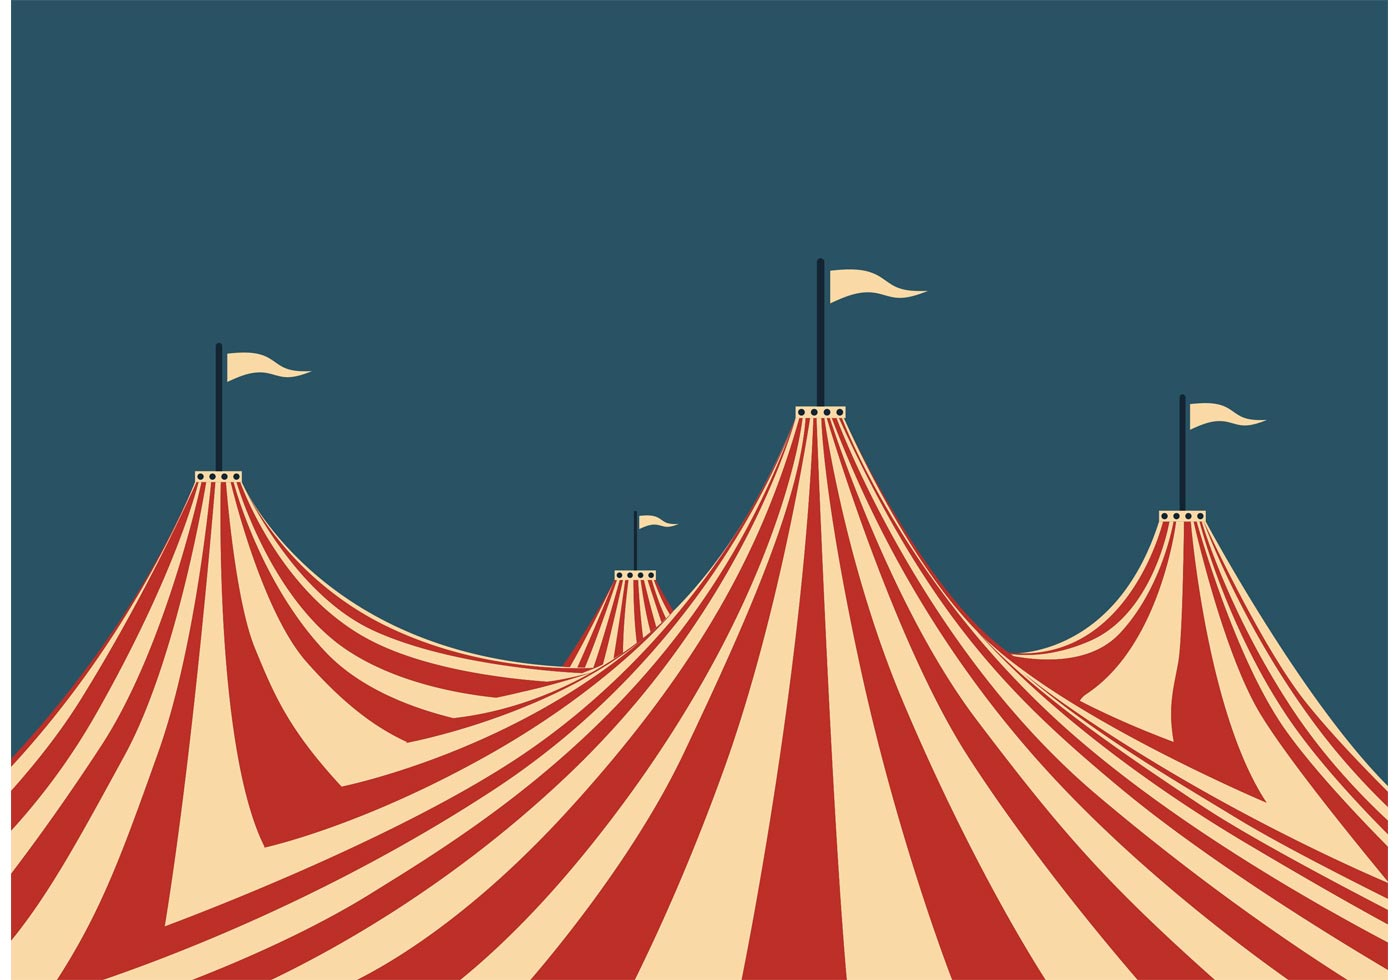 Big Top Tent Free Vector Art.